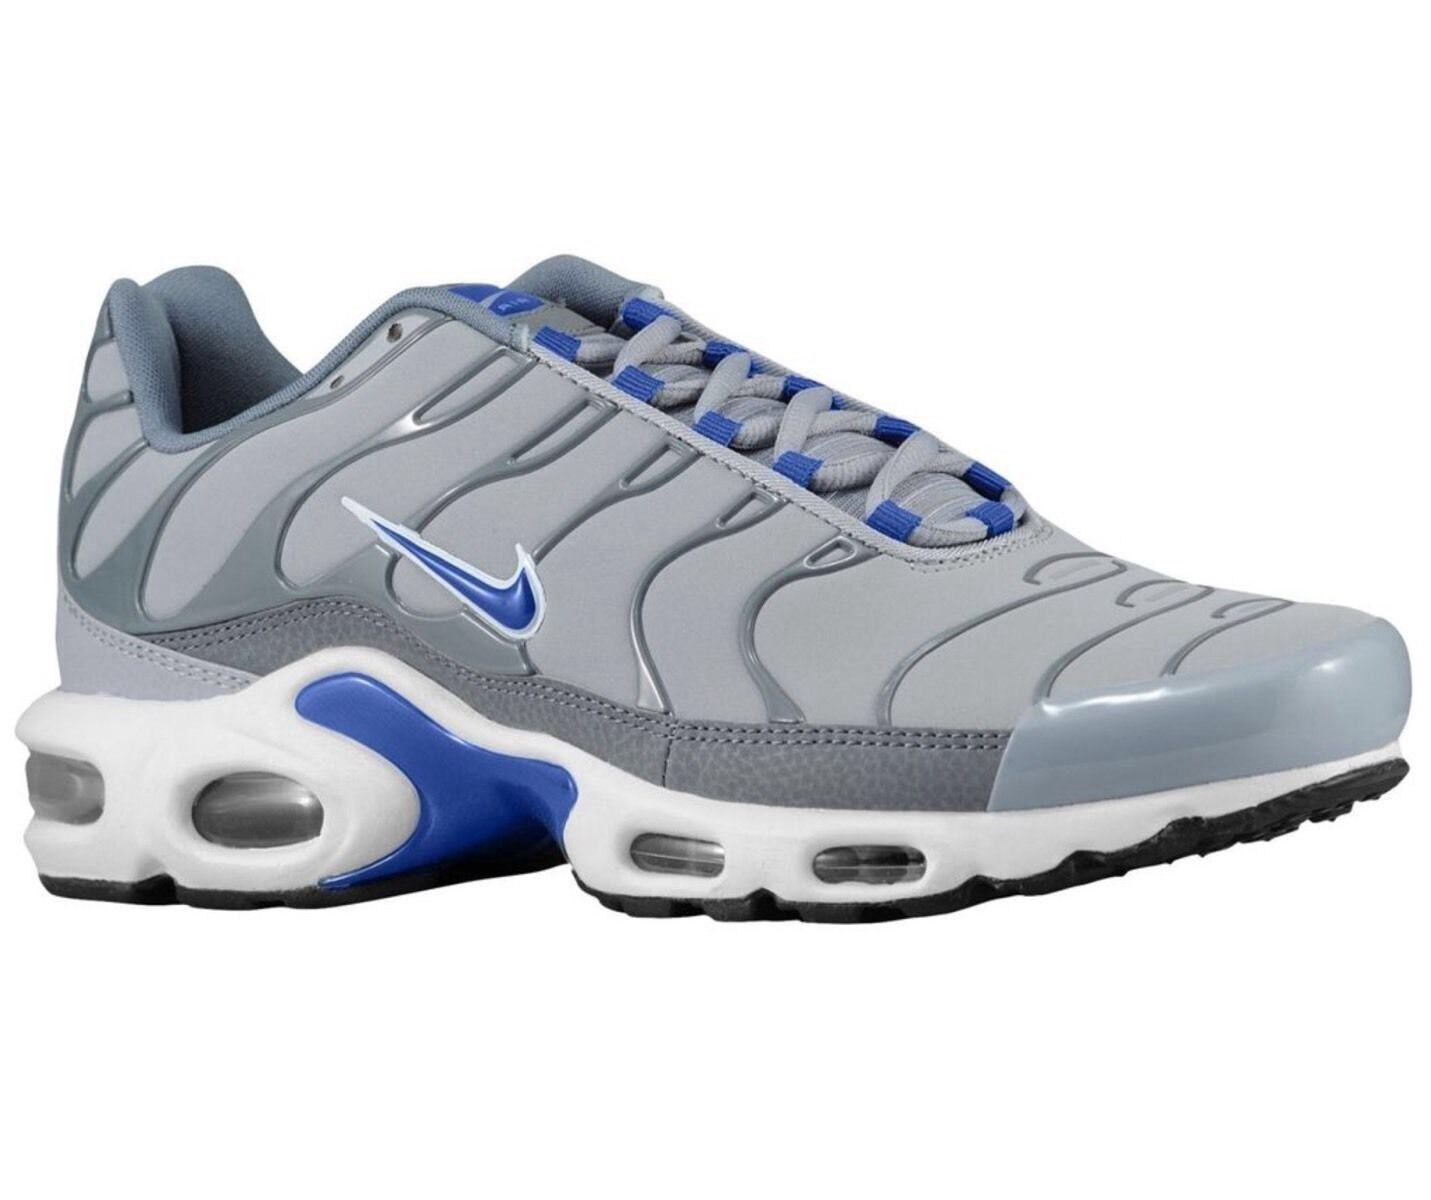 NIKE AIR MAX PLUS TN MENS SHOES WOLF GREY blueE SIZE 10.5 604133 094